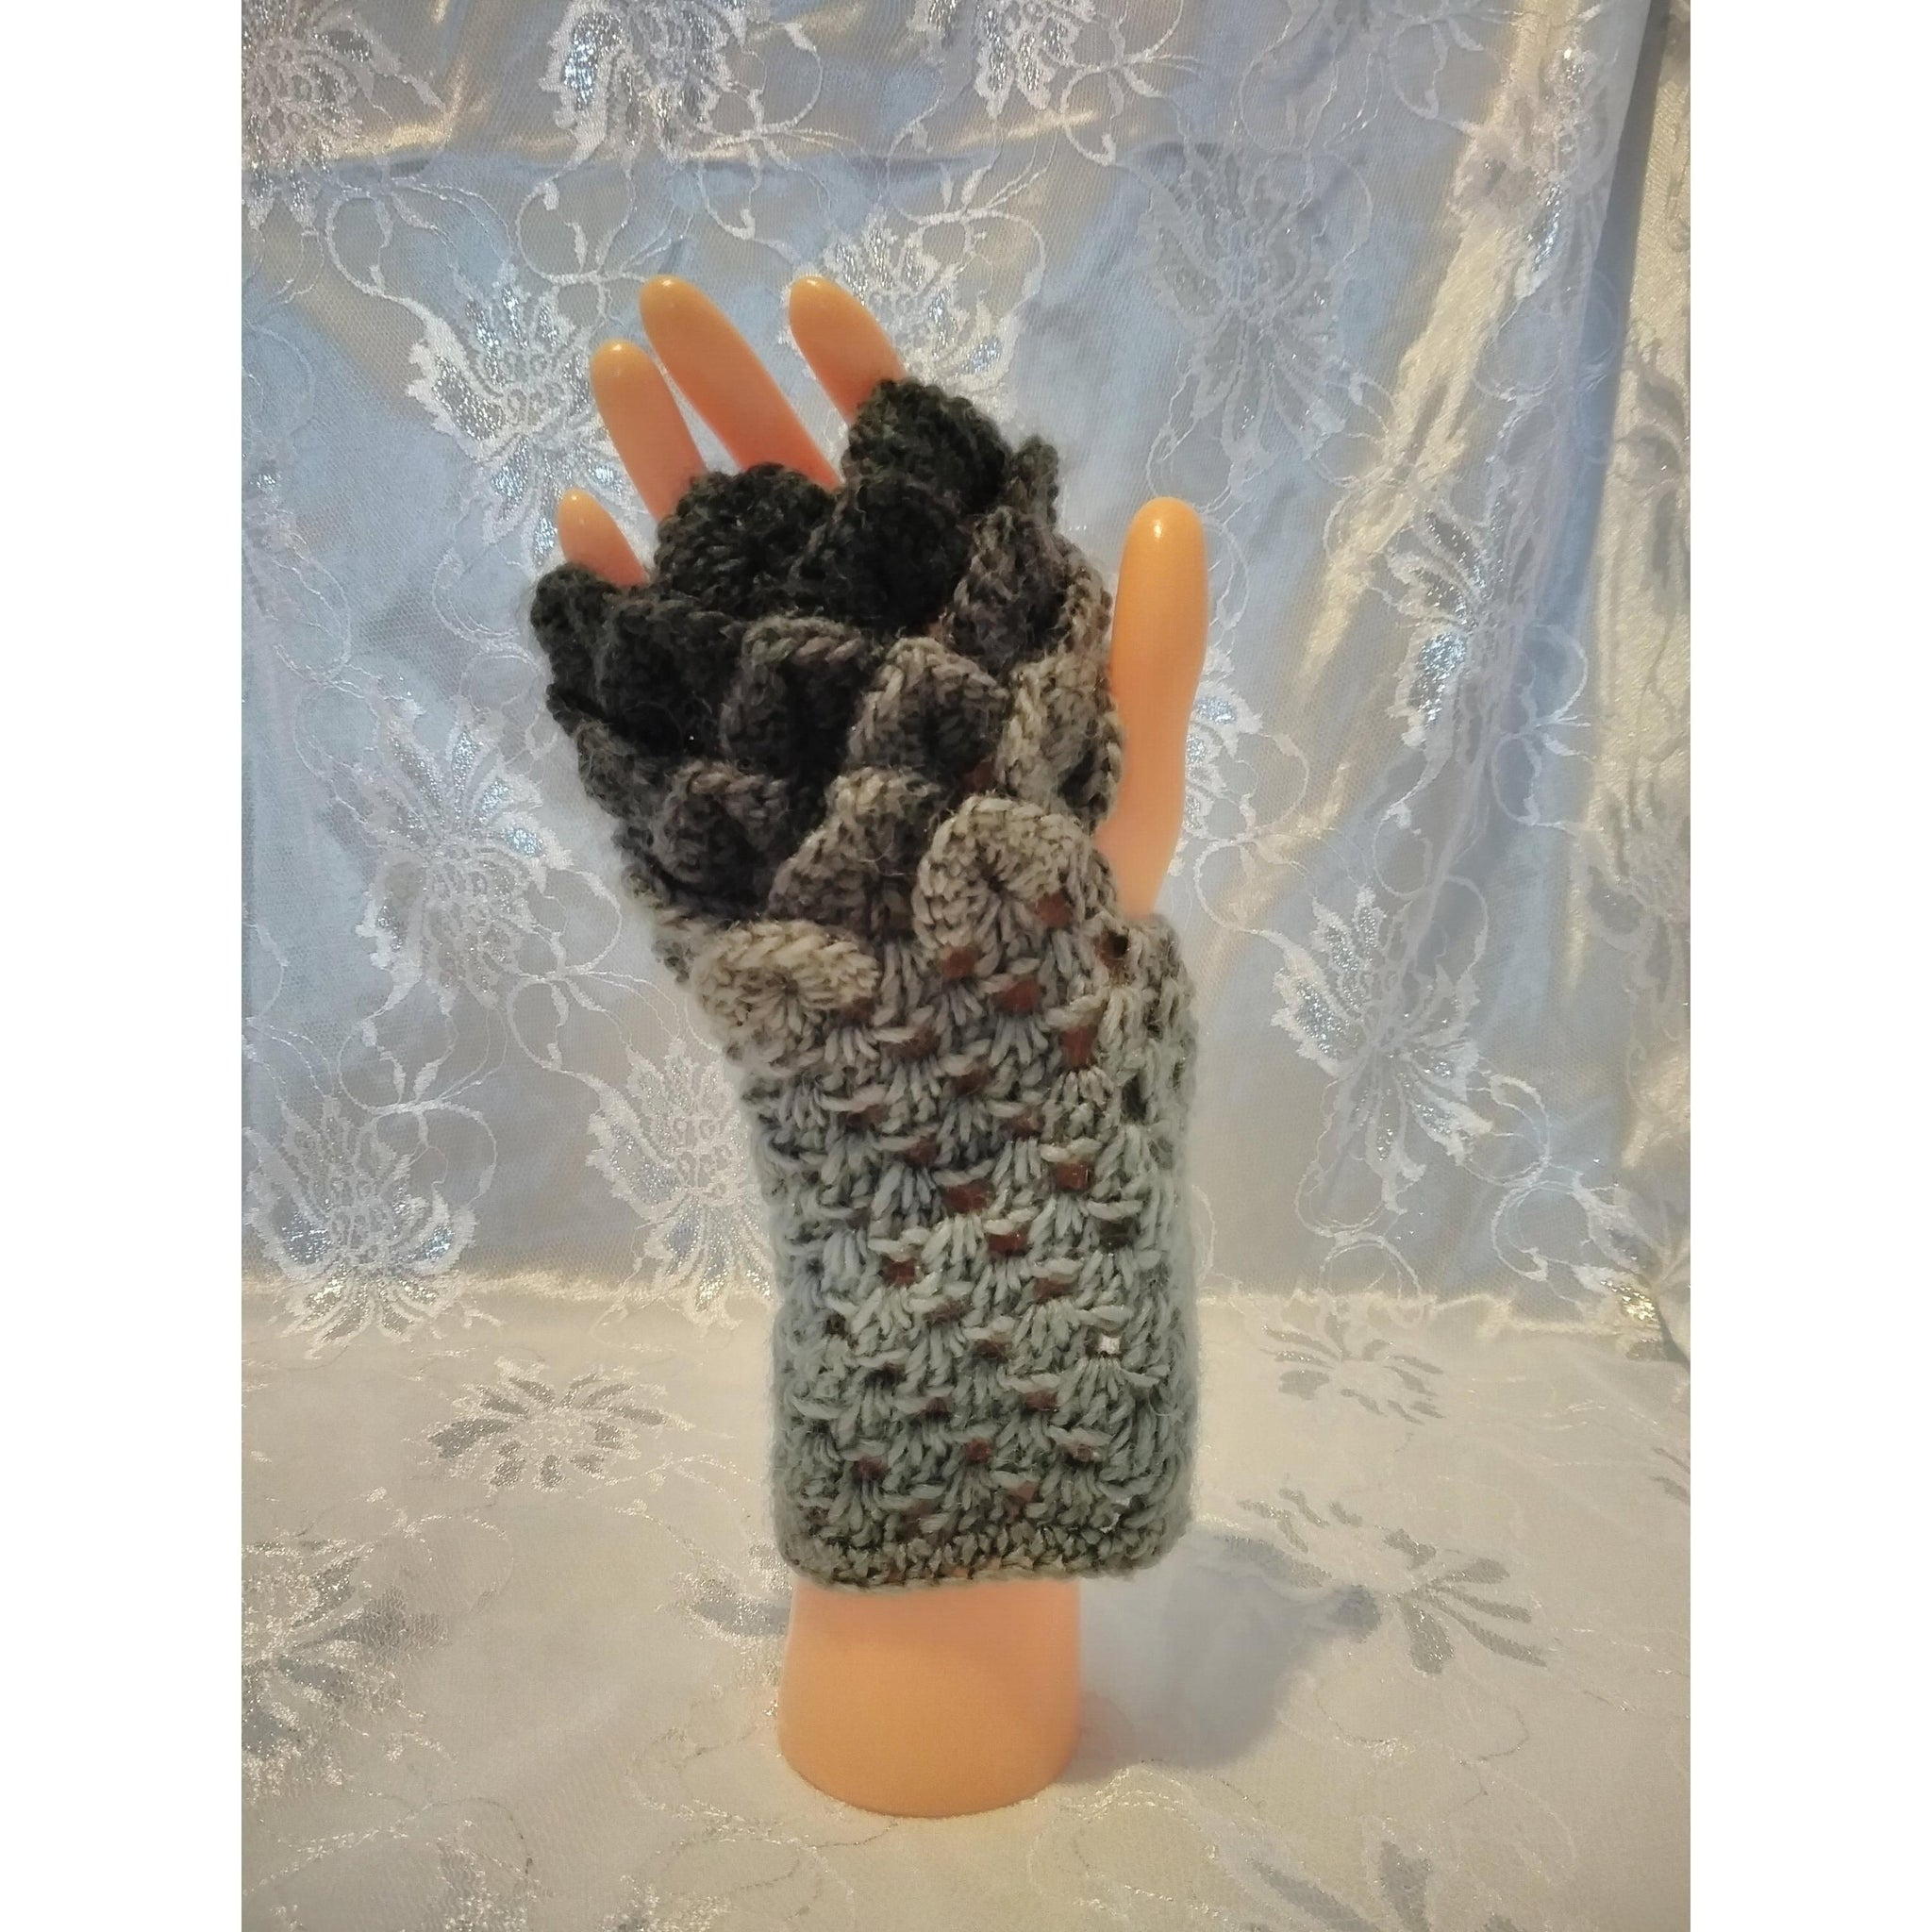 Dragonscale gloves – King Cole Riot Domino